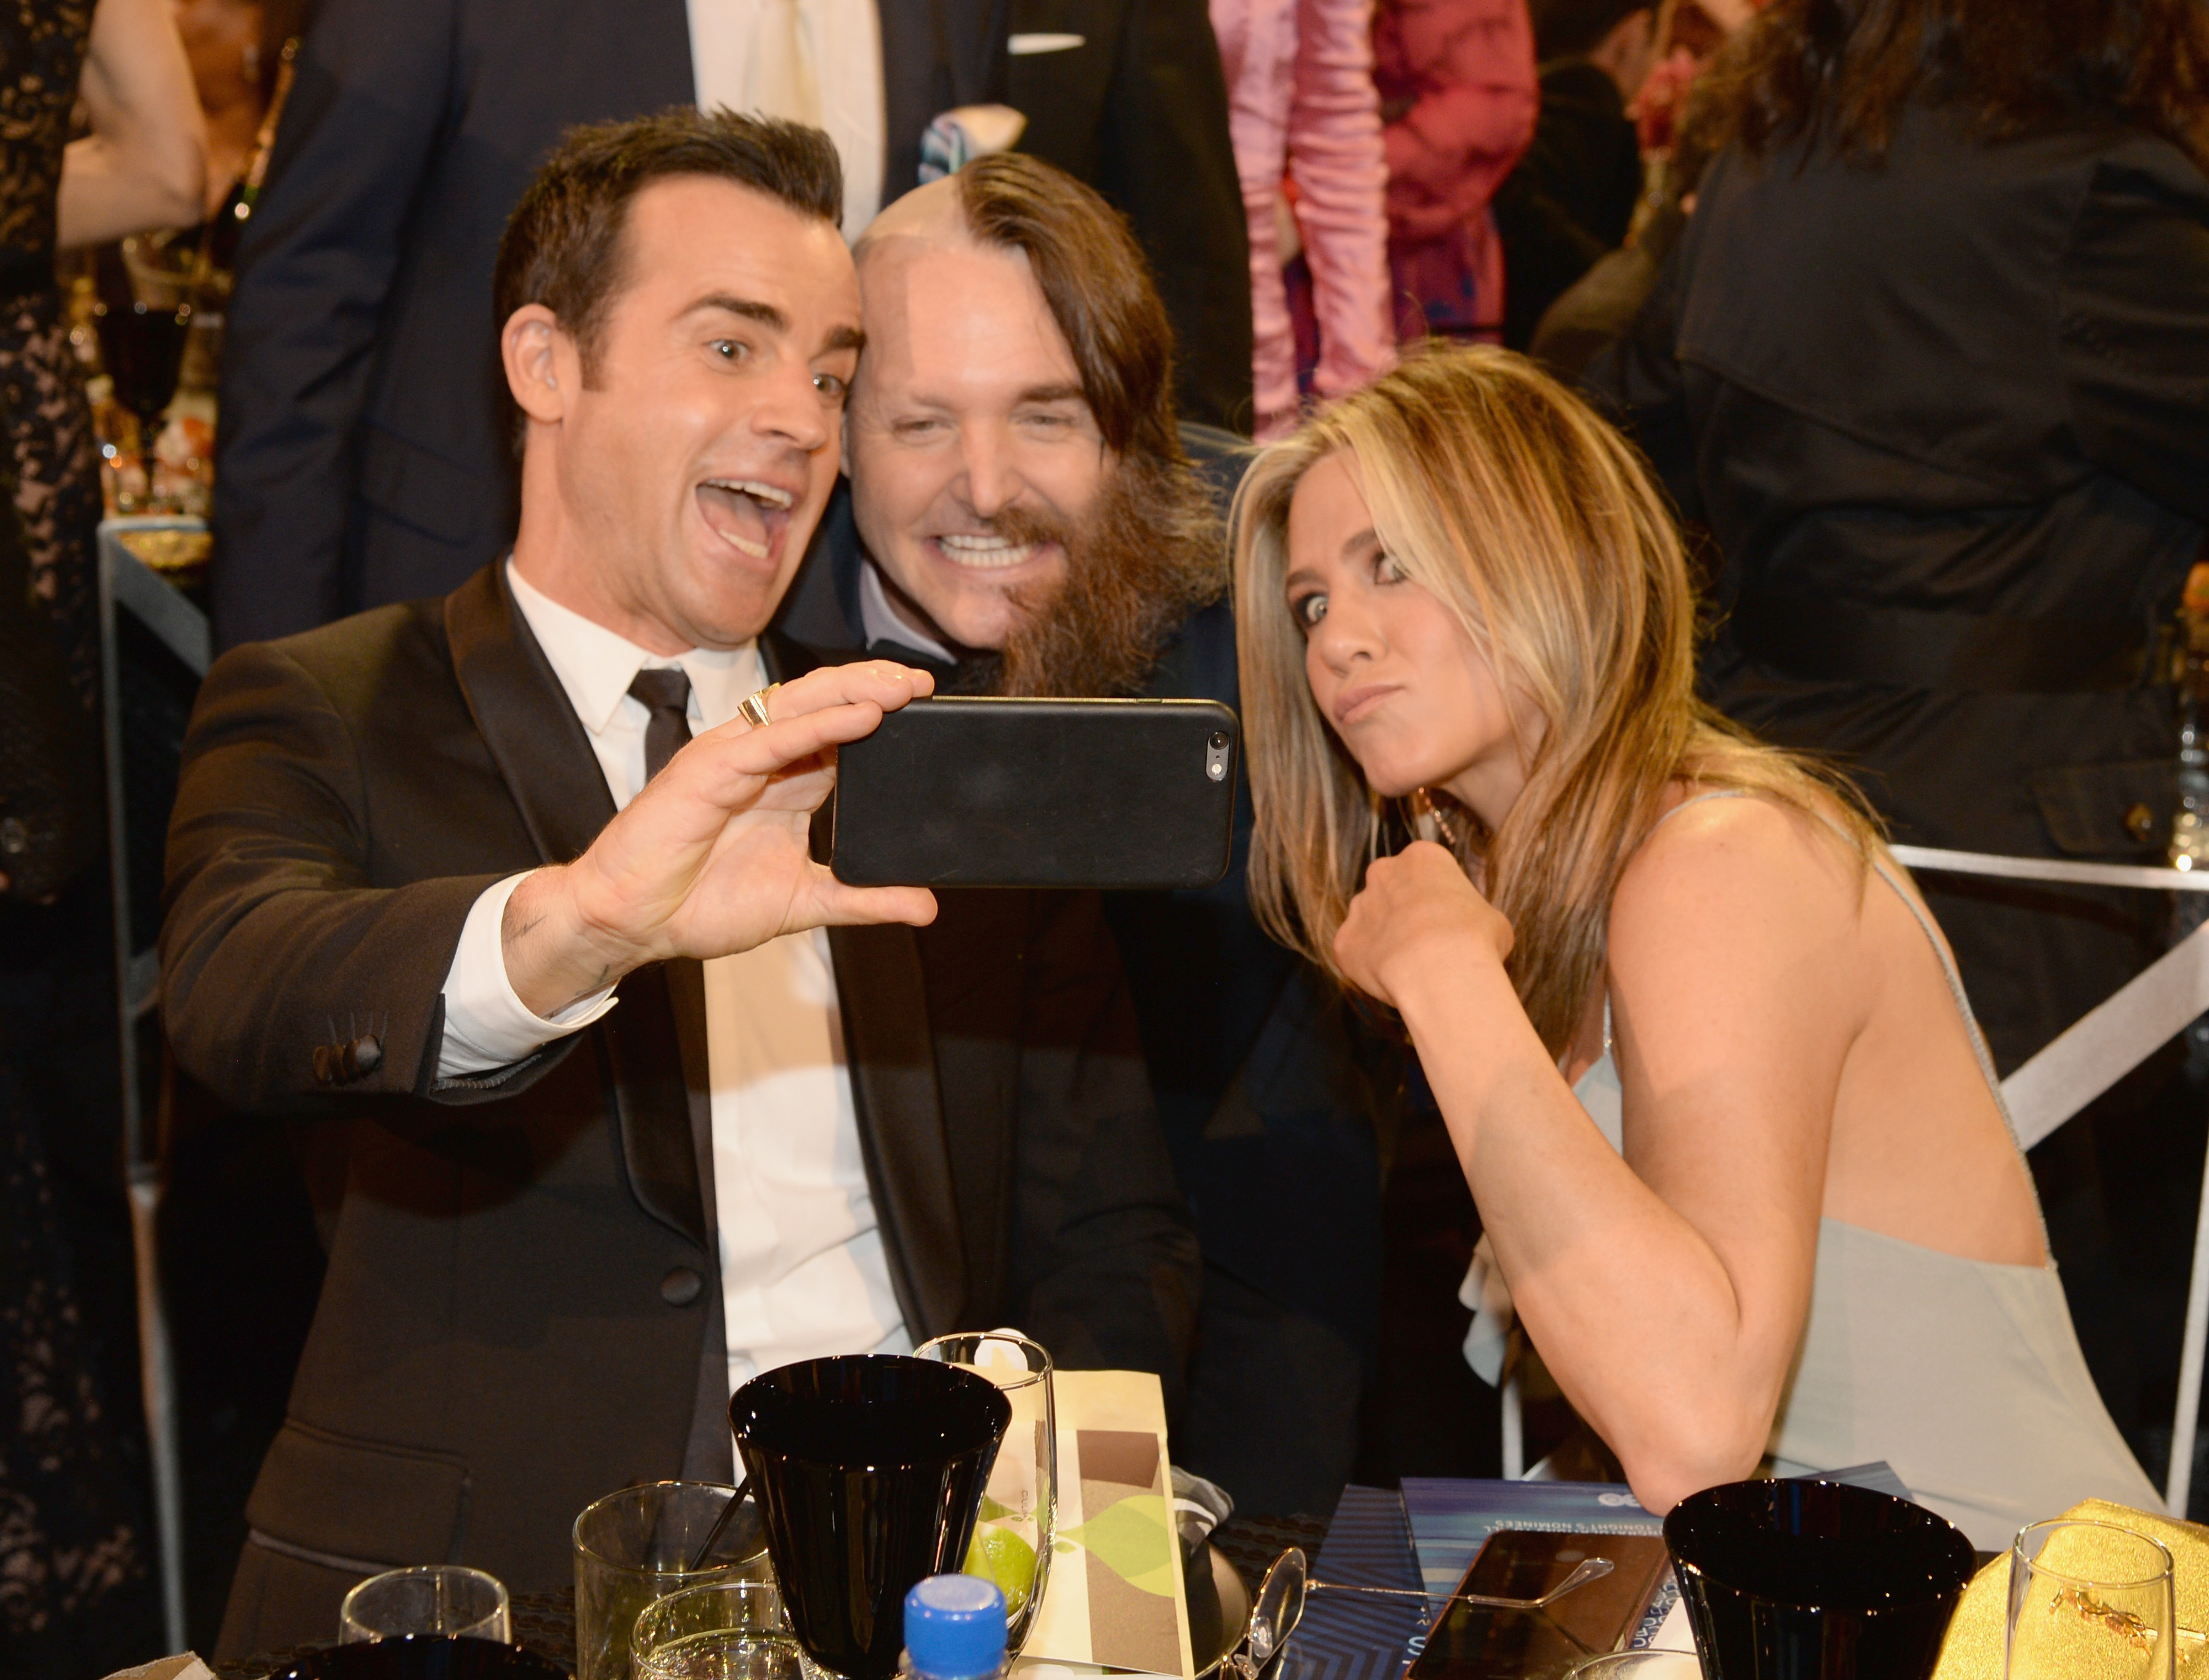 Justin Theroux, Will Forte and Jennifer Aniston